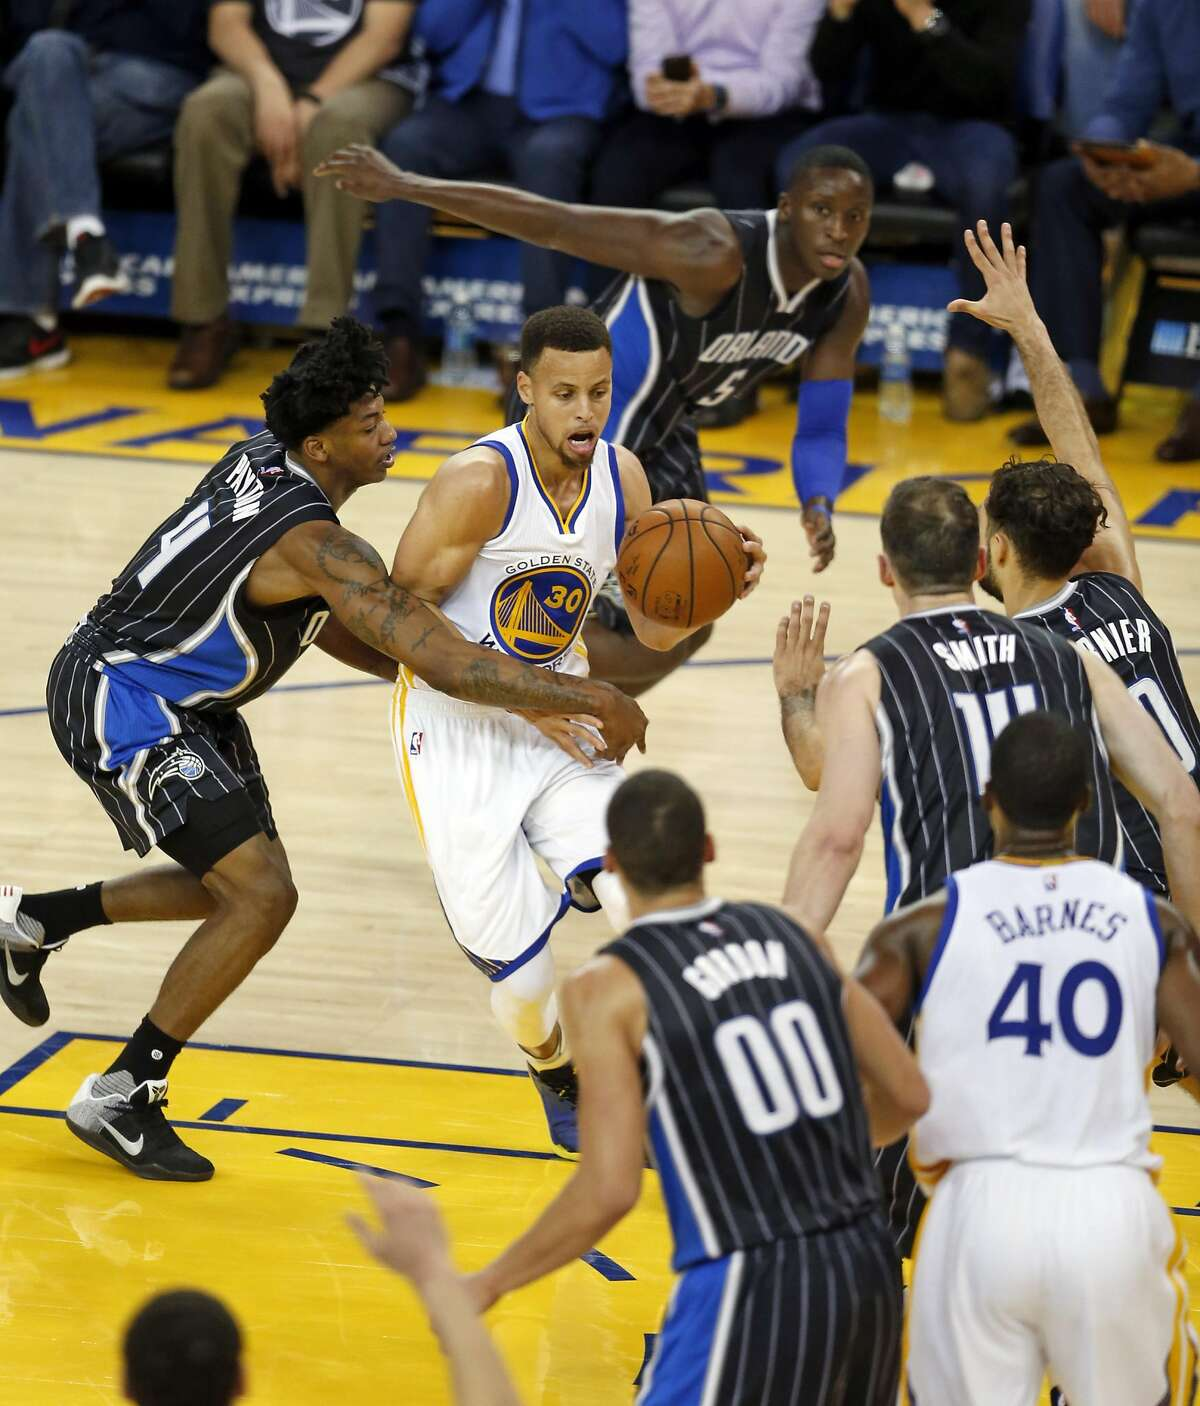 Golden State Warriors' Stephen Curry dribbles among 5 Orlando Magic players in 3rd quarter during NBA game at Oracle Arena in Oakland, Calif., on Monday, March 7, 2016.